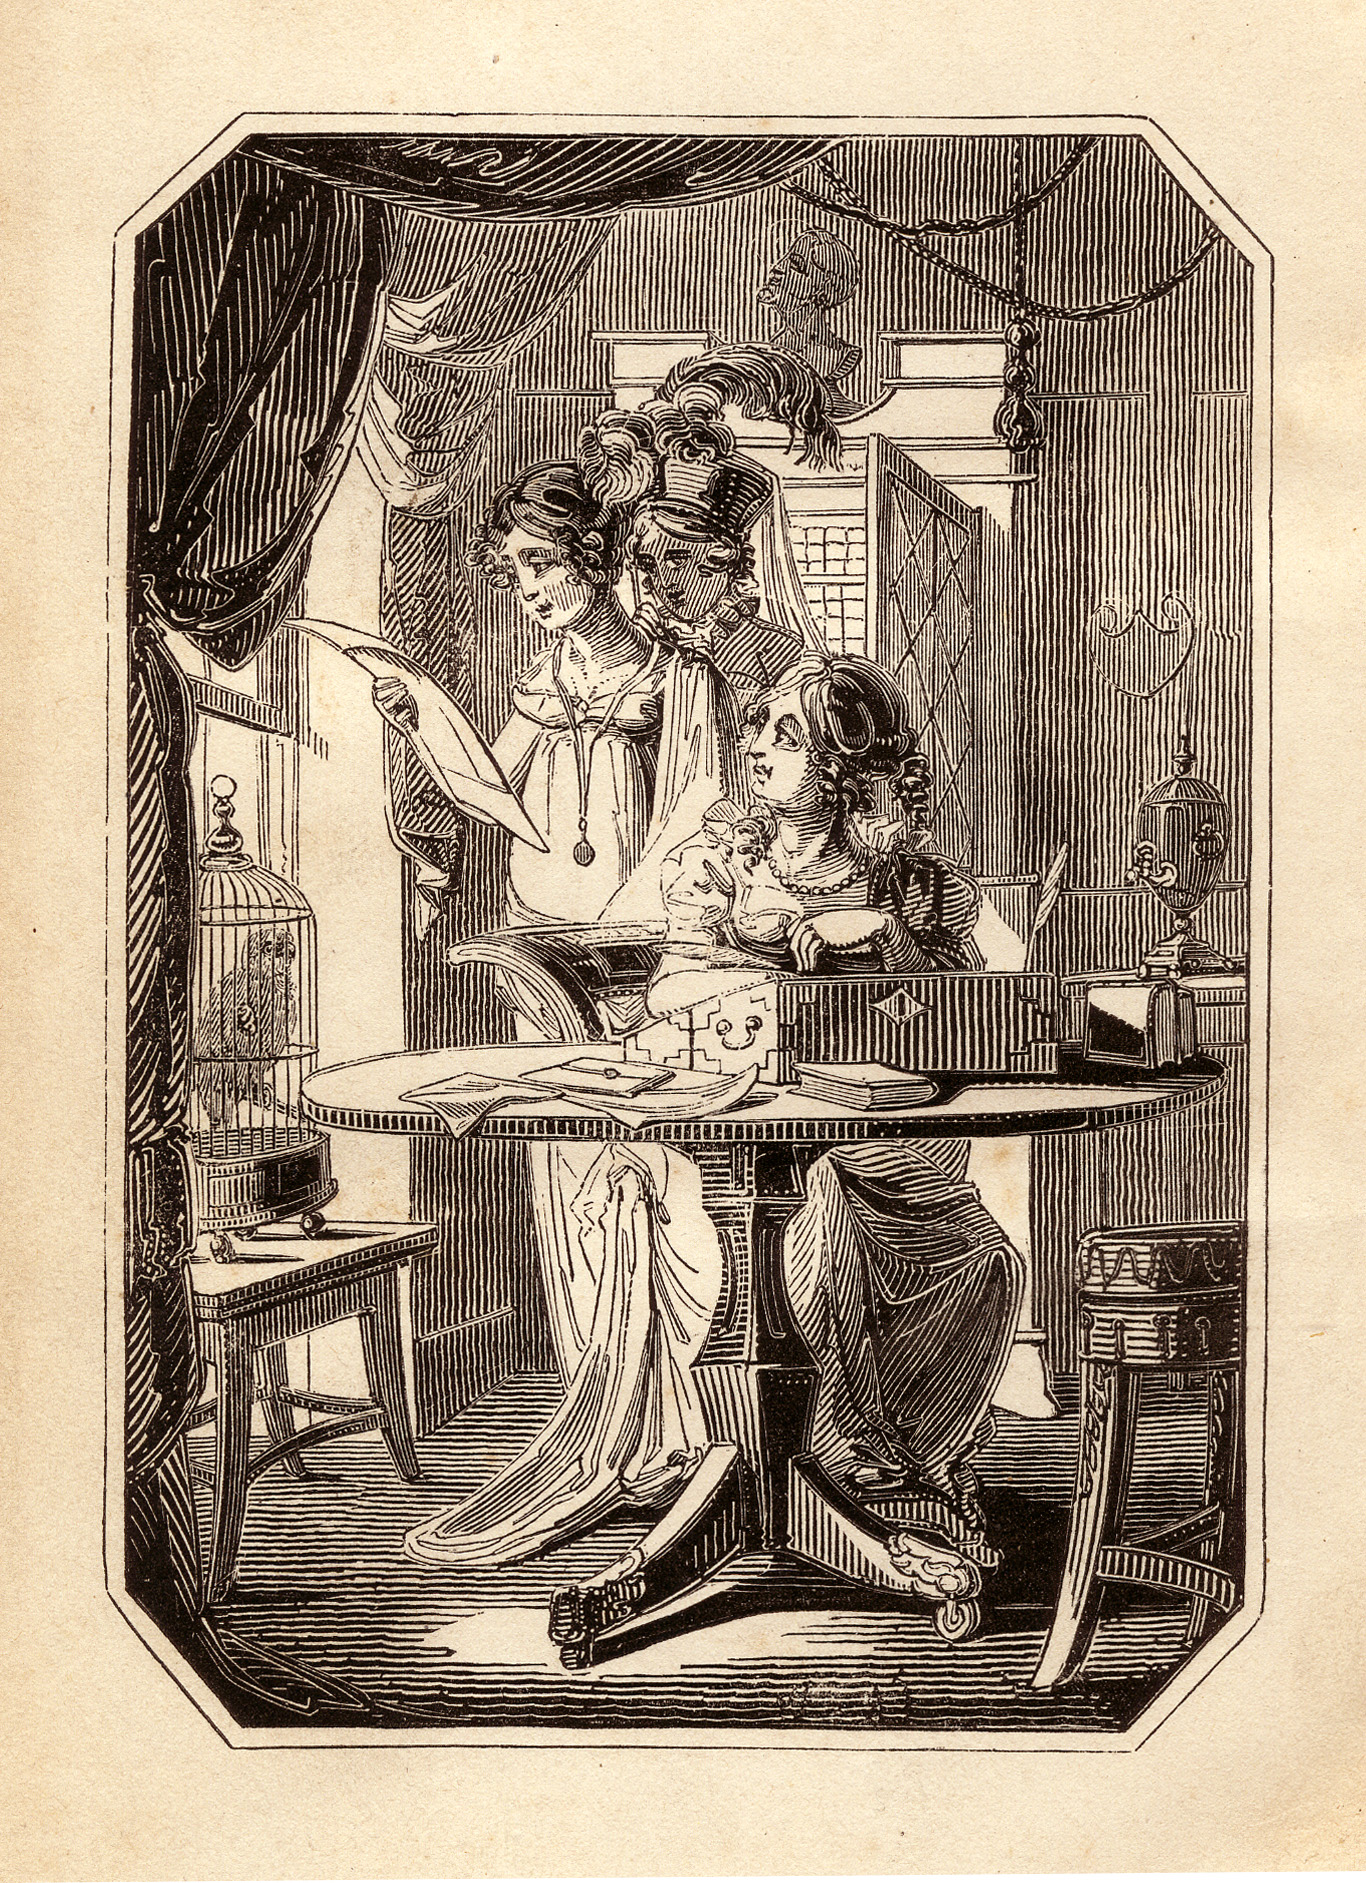 Jane Austen at Writing Desk